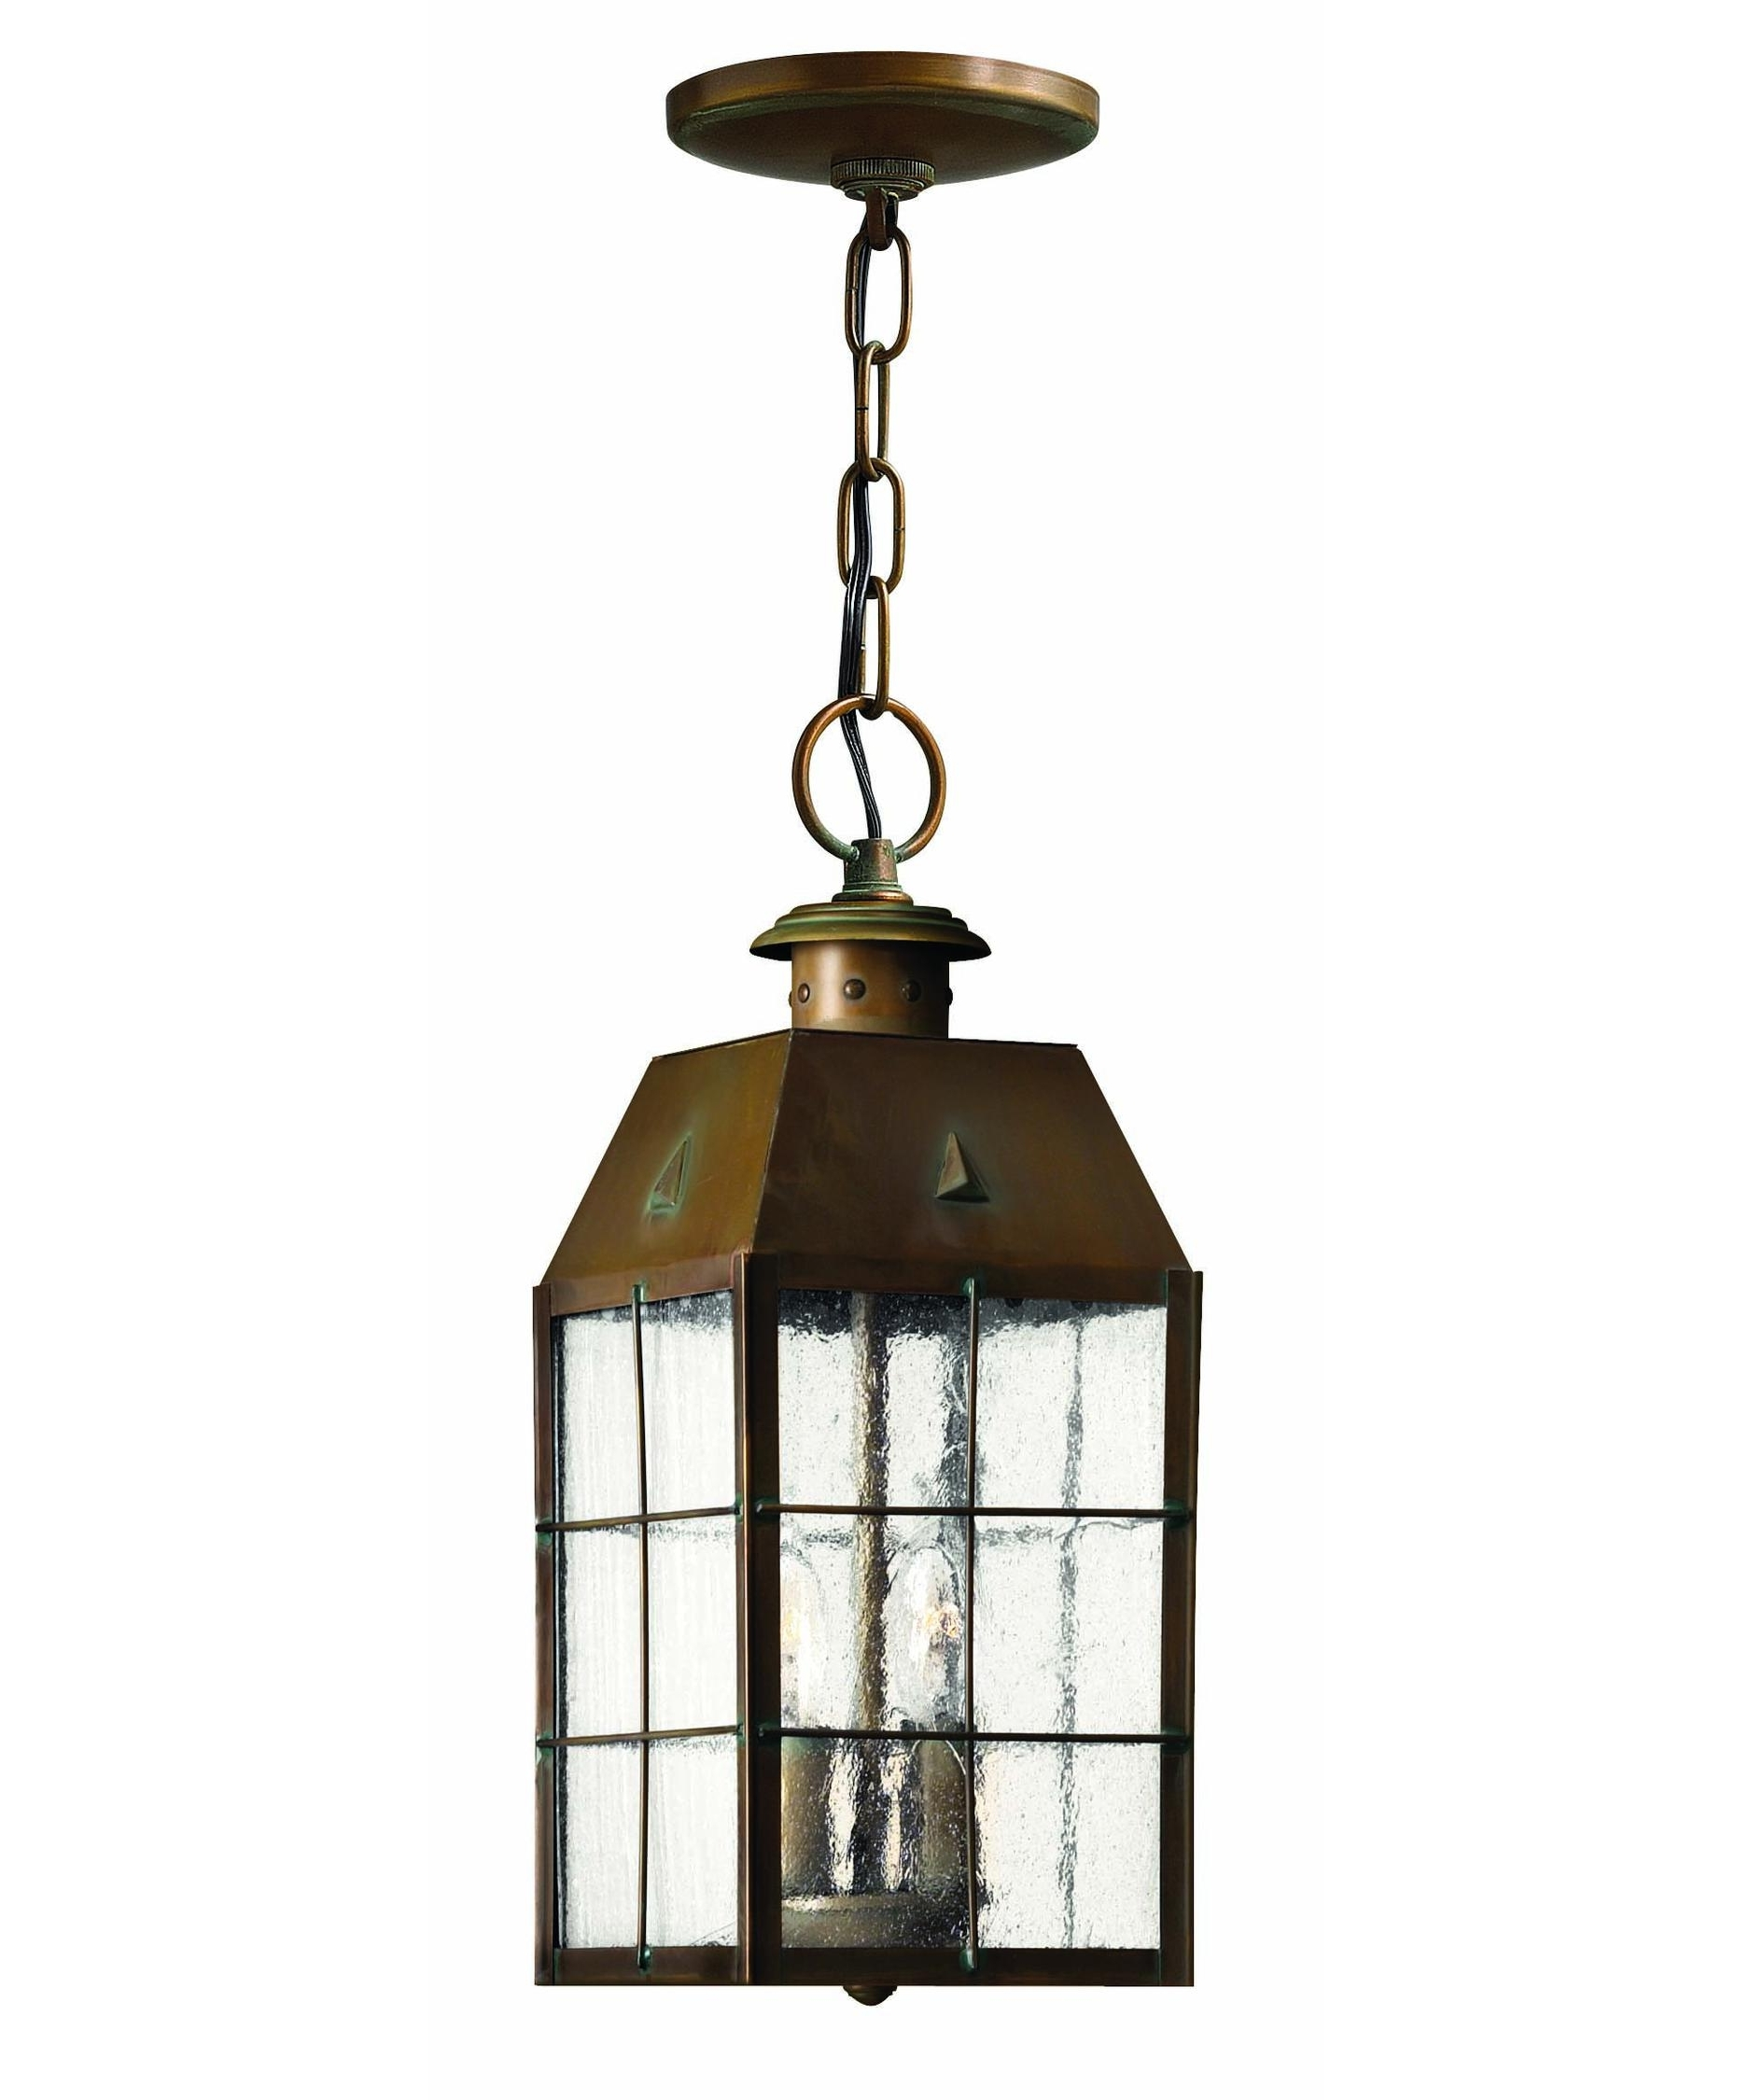 Hinkley Lighting 2372 Nantucket 6 Inch Wide 2 Light Outdoor Hanging Intended For Most Up To Date Outdoor Hanging Porch Lights (View 7 of 20)